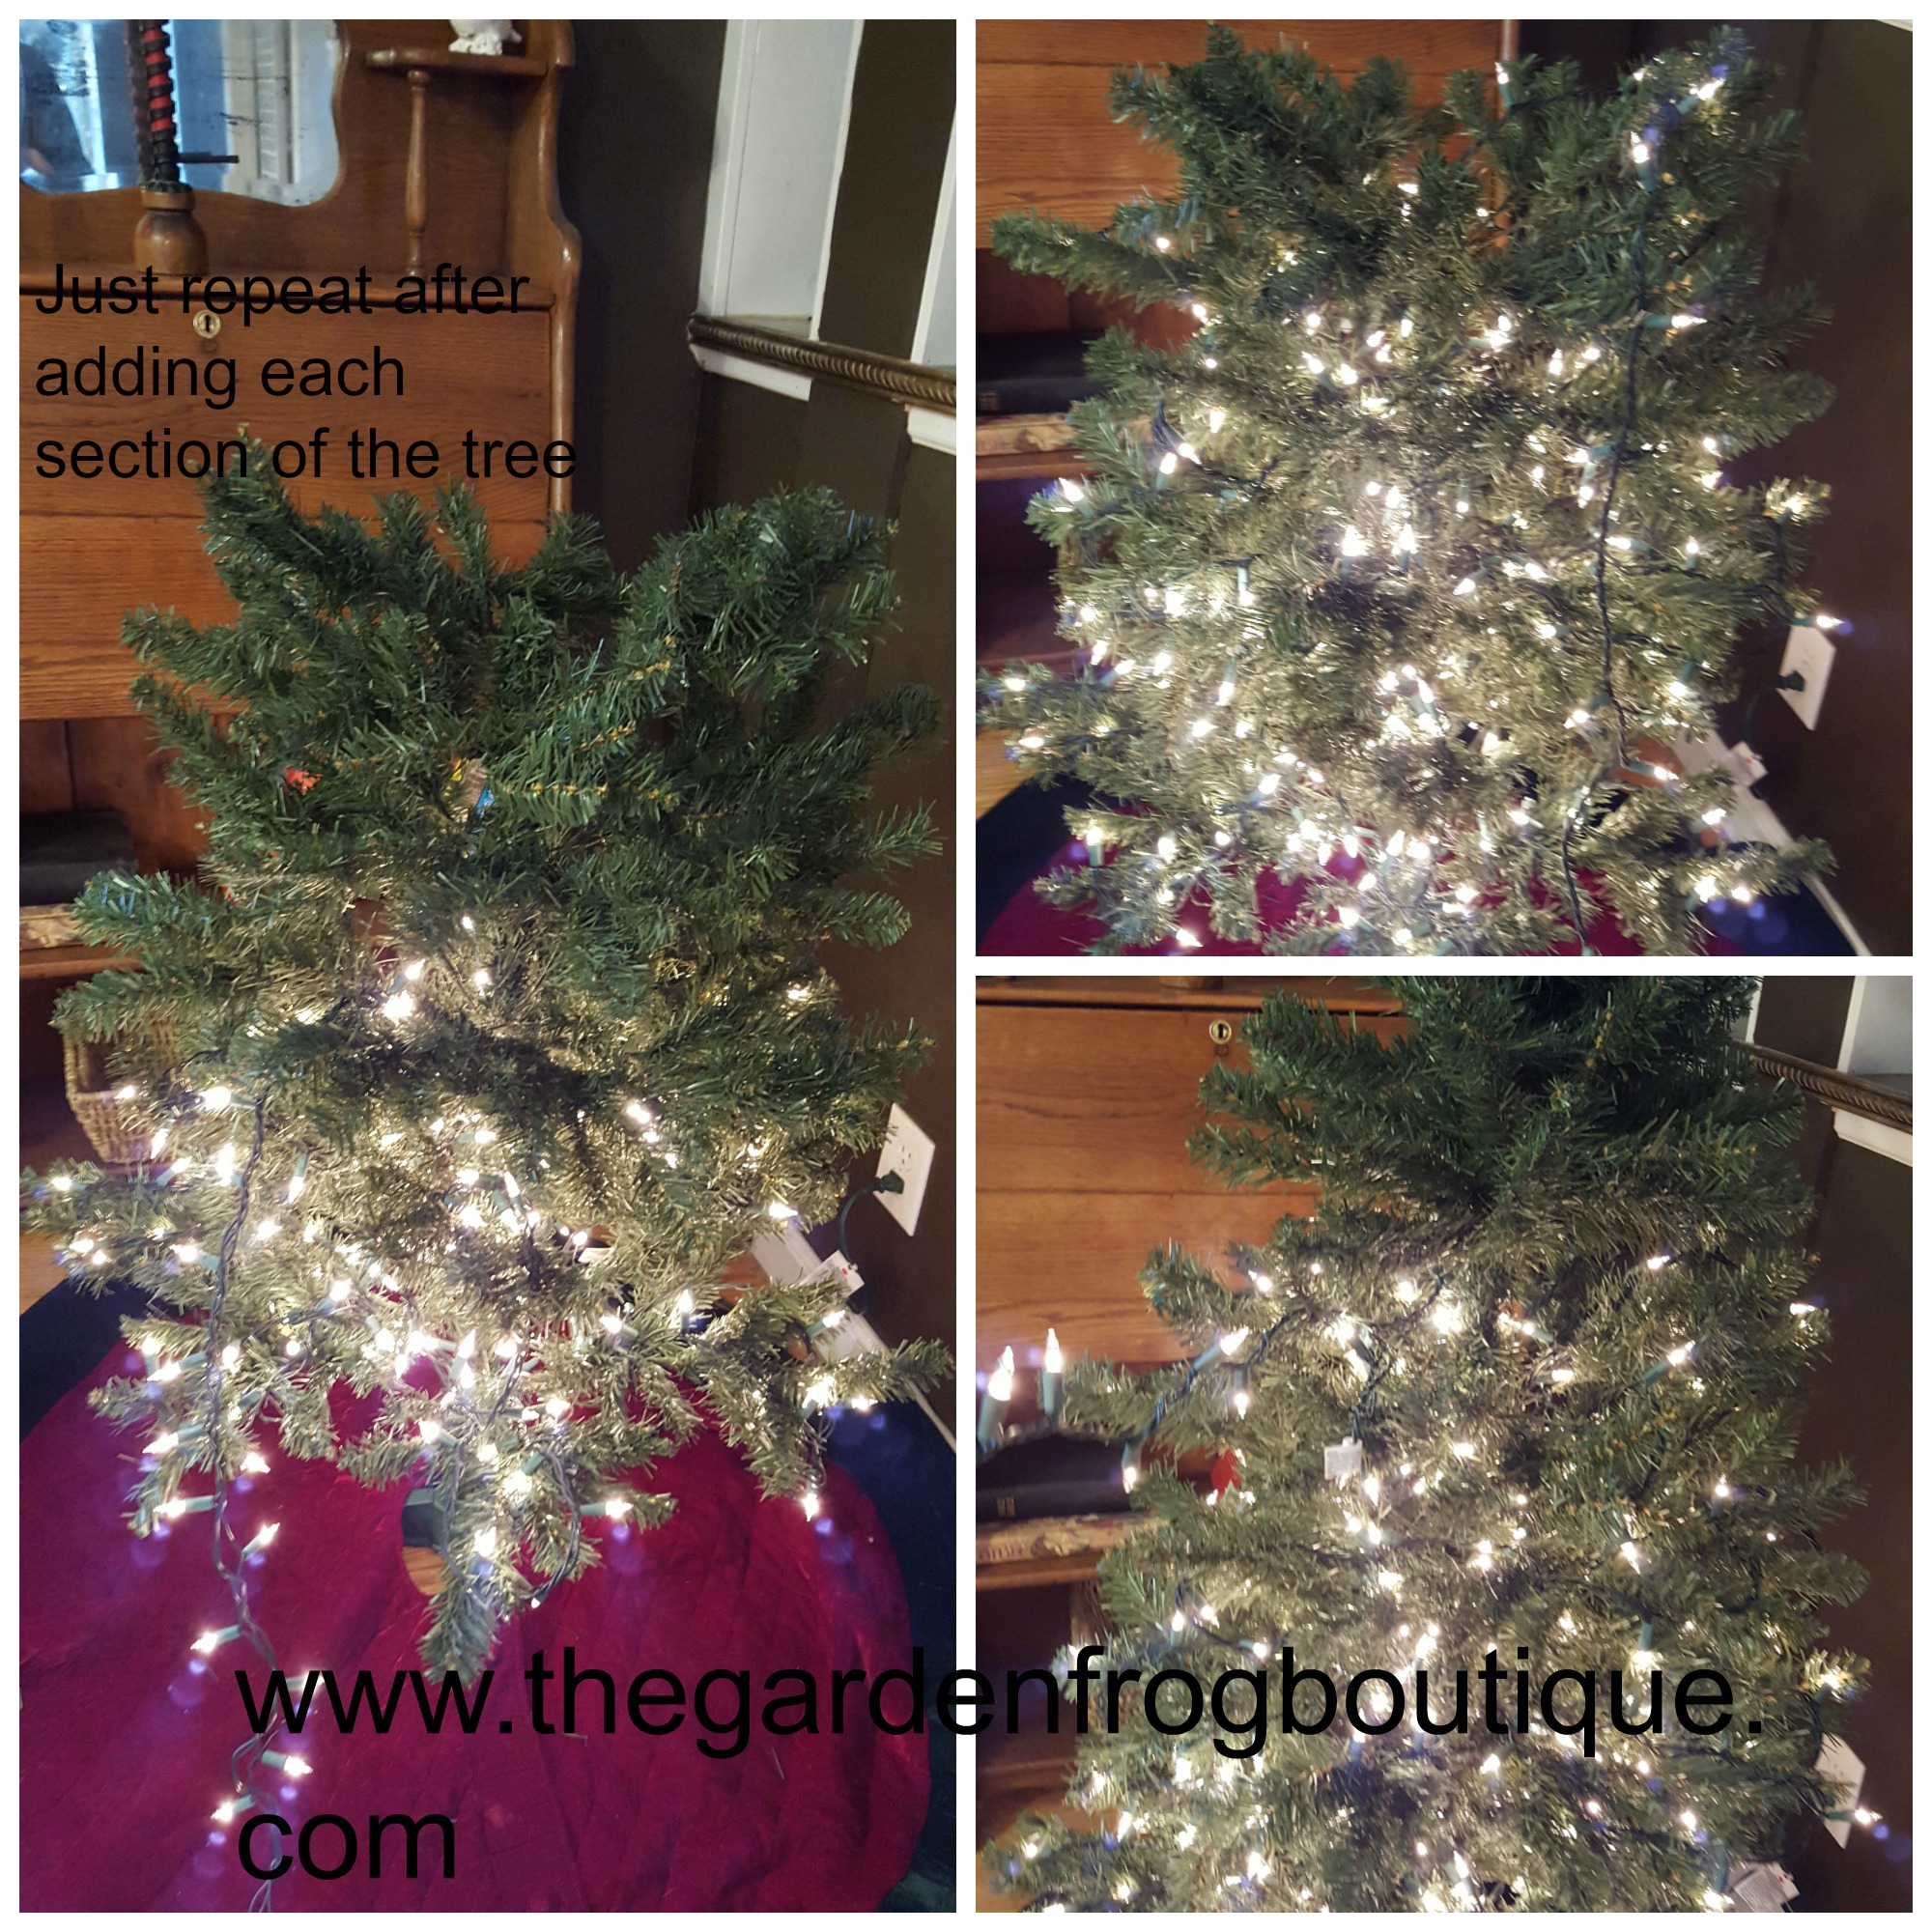 How To Put Lights On A Christmas Tree.How To Put Lights On An Artificial Christmas Tree The